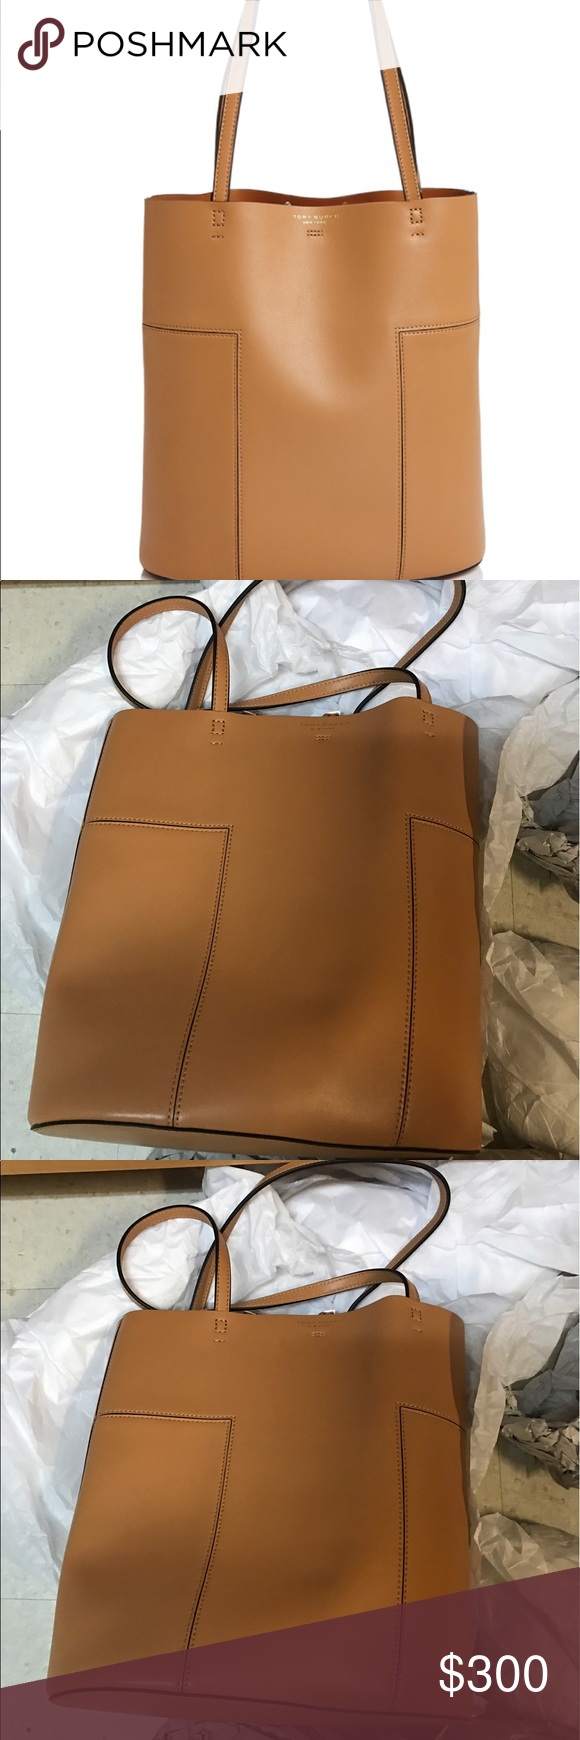 d13ba1cb7f00 Tory burch block t medium leather tote new Double handles Toggle closure   unlined Removable zip pouch 11.25